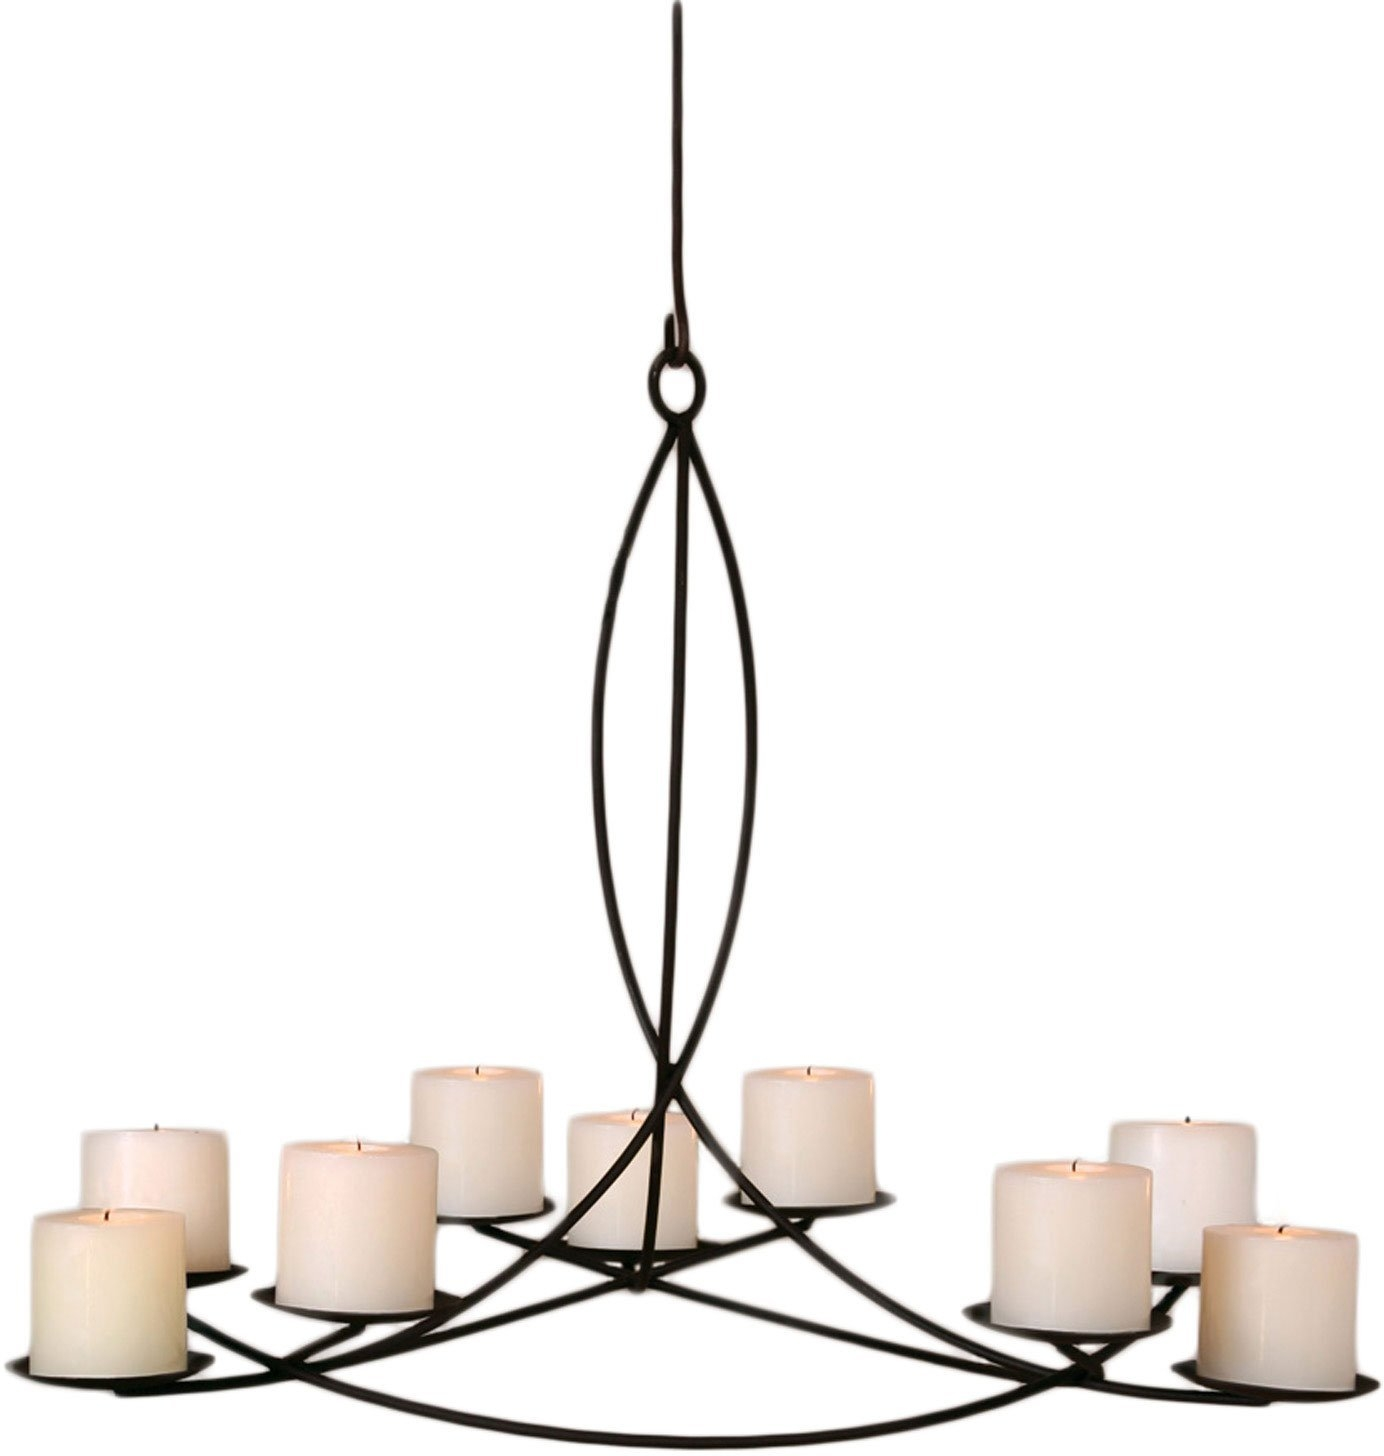 Lighting Wonderful Candle Chandelier Non Electric For Modern For Candle Chandelier (#6 of 12)